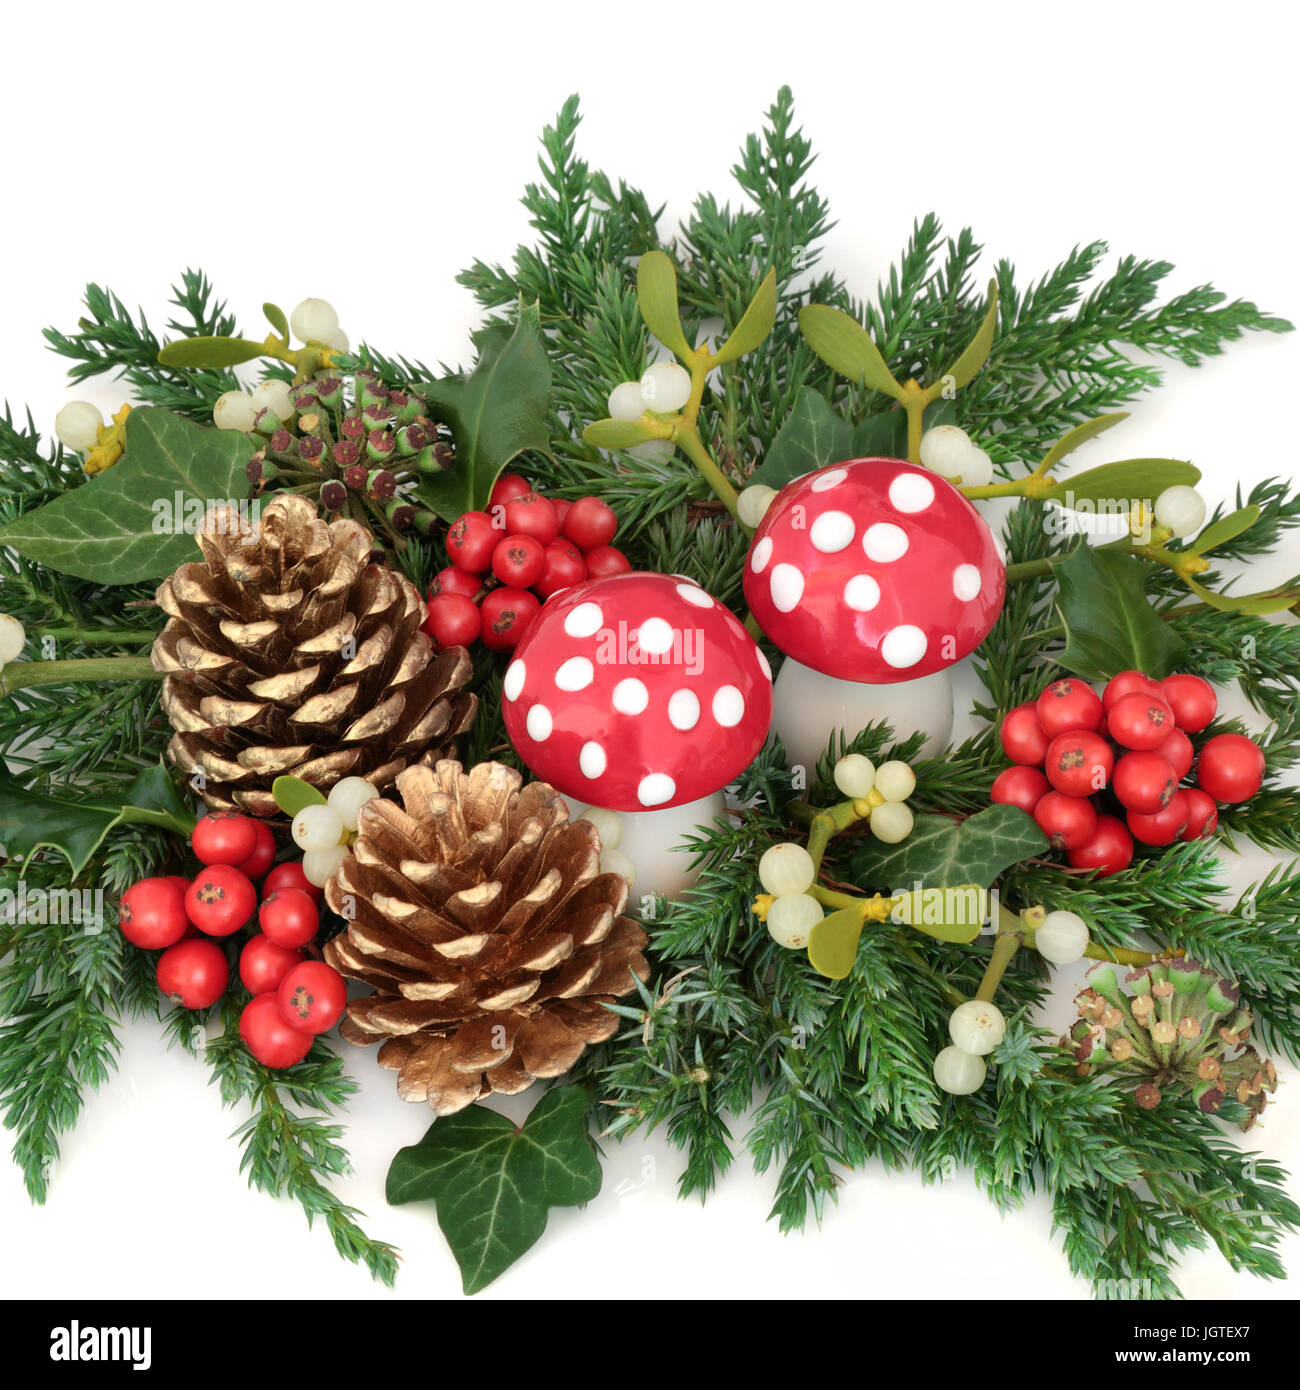 christmas decoration with holly fly agaric mushroom ornaments gold pine cones mistletoe and